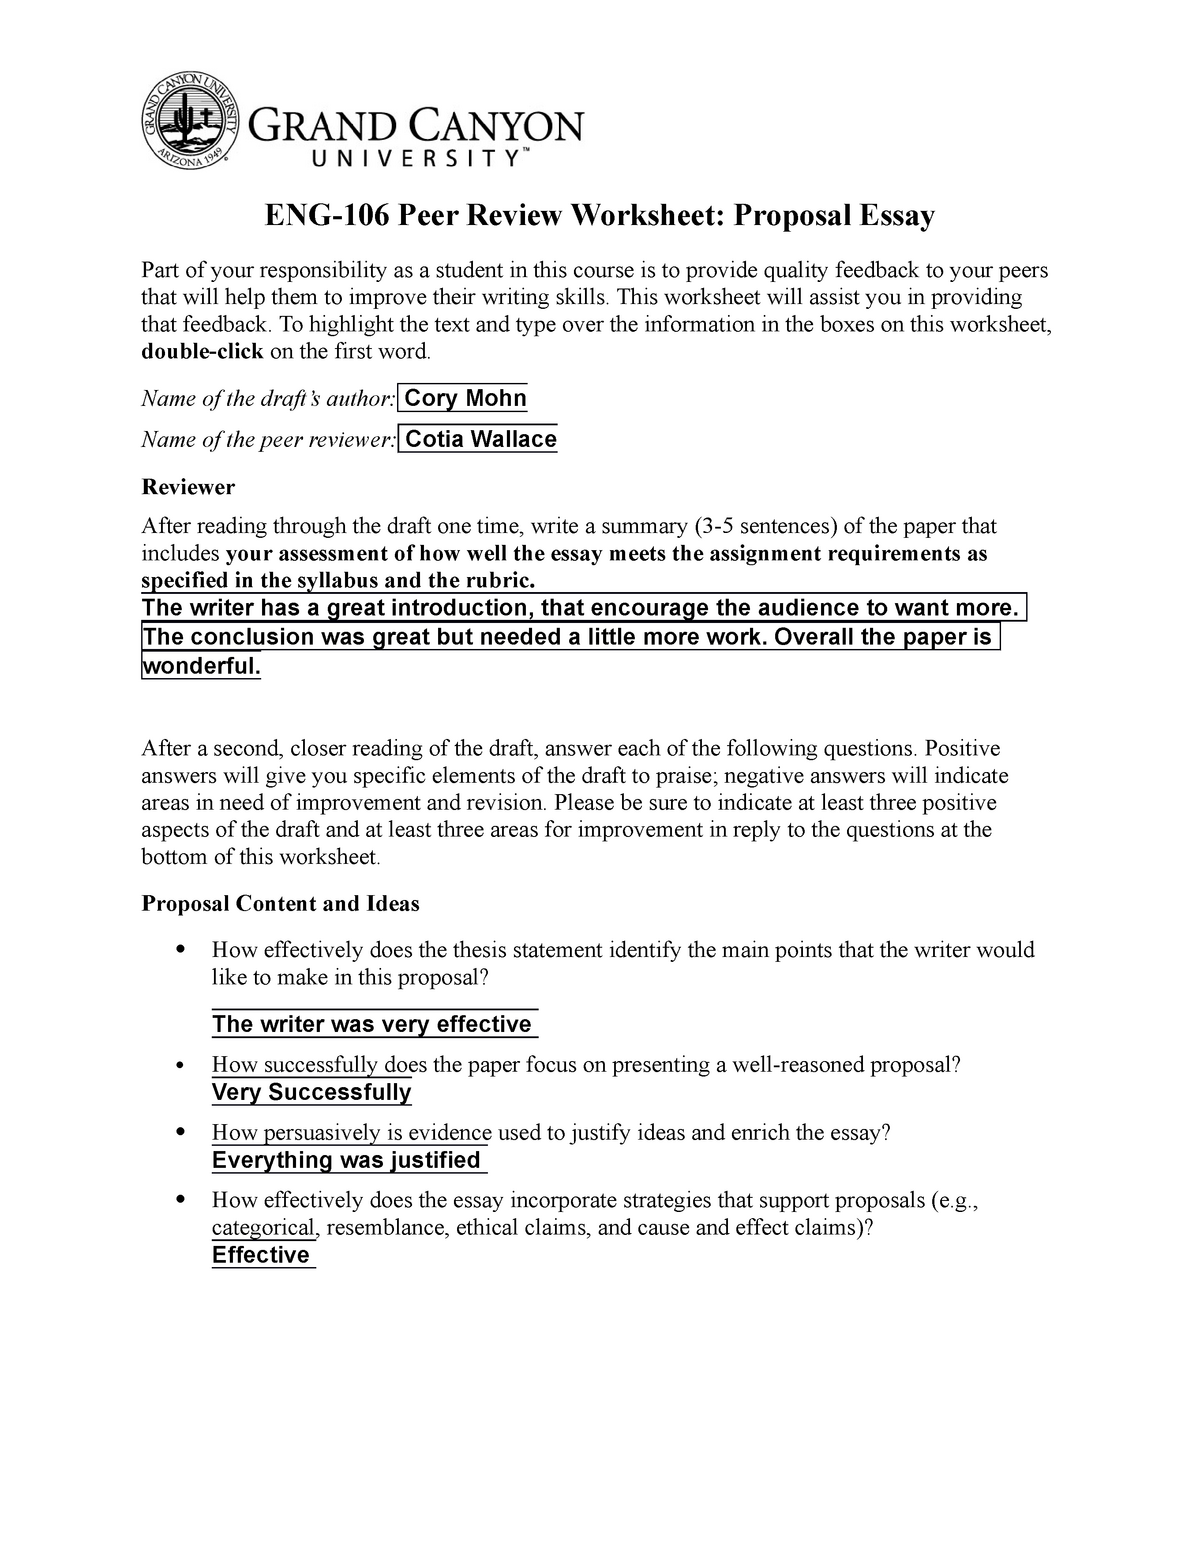 ENG106 Proposal Peer Review Worksheet - ENG-106: English Composition